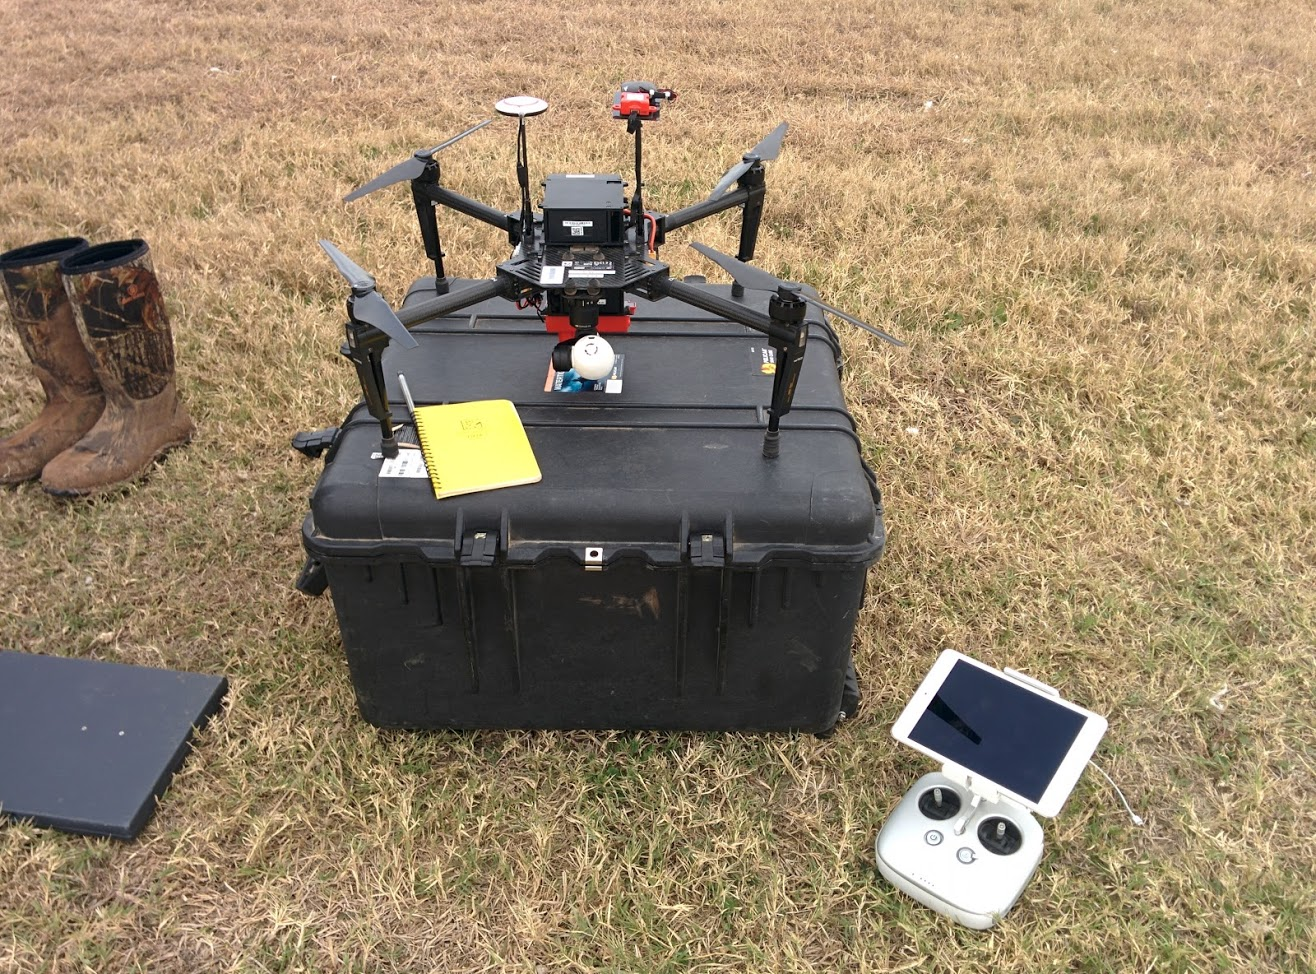 do unmanned aerial vehicles have a place in wild pig management